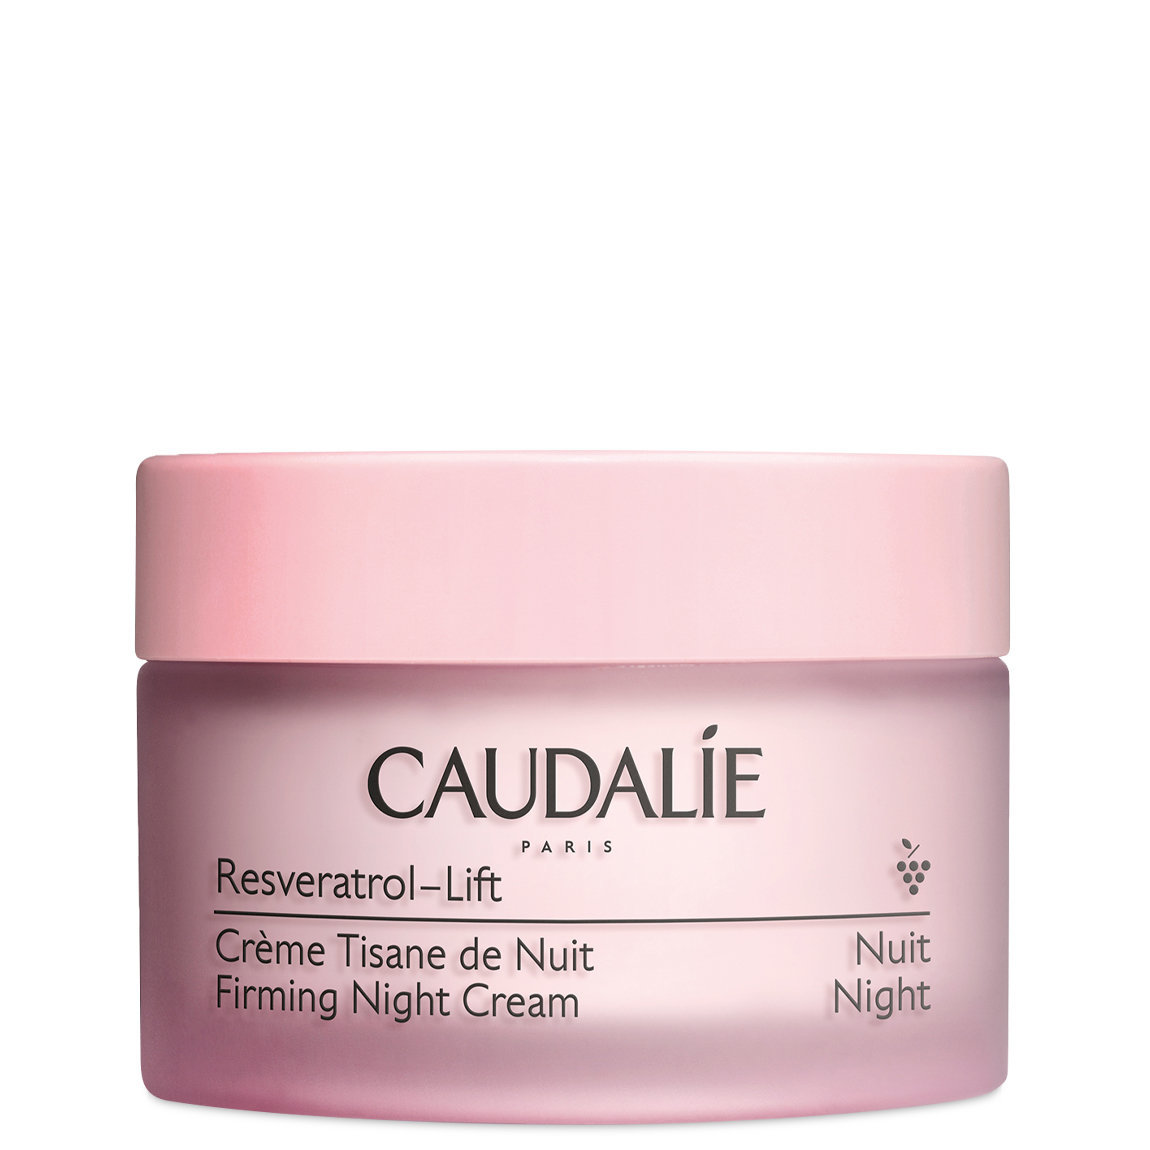 Caudalie Resveratrol-Lift Firming Night Cream alternative view 1 - product swatch.